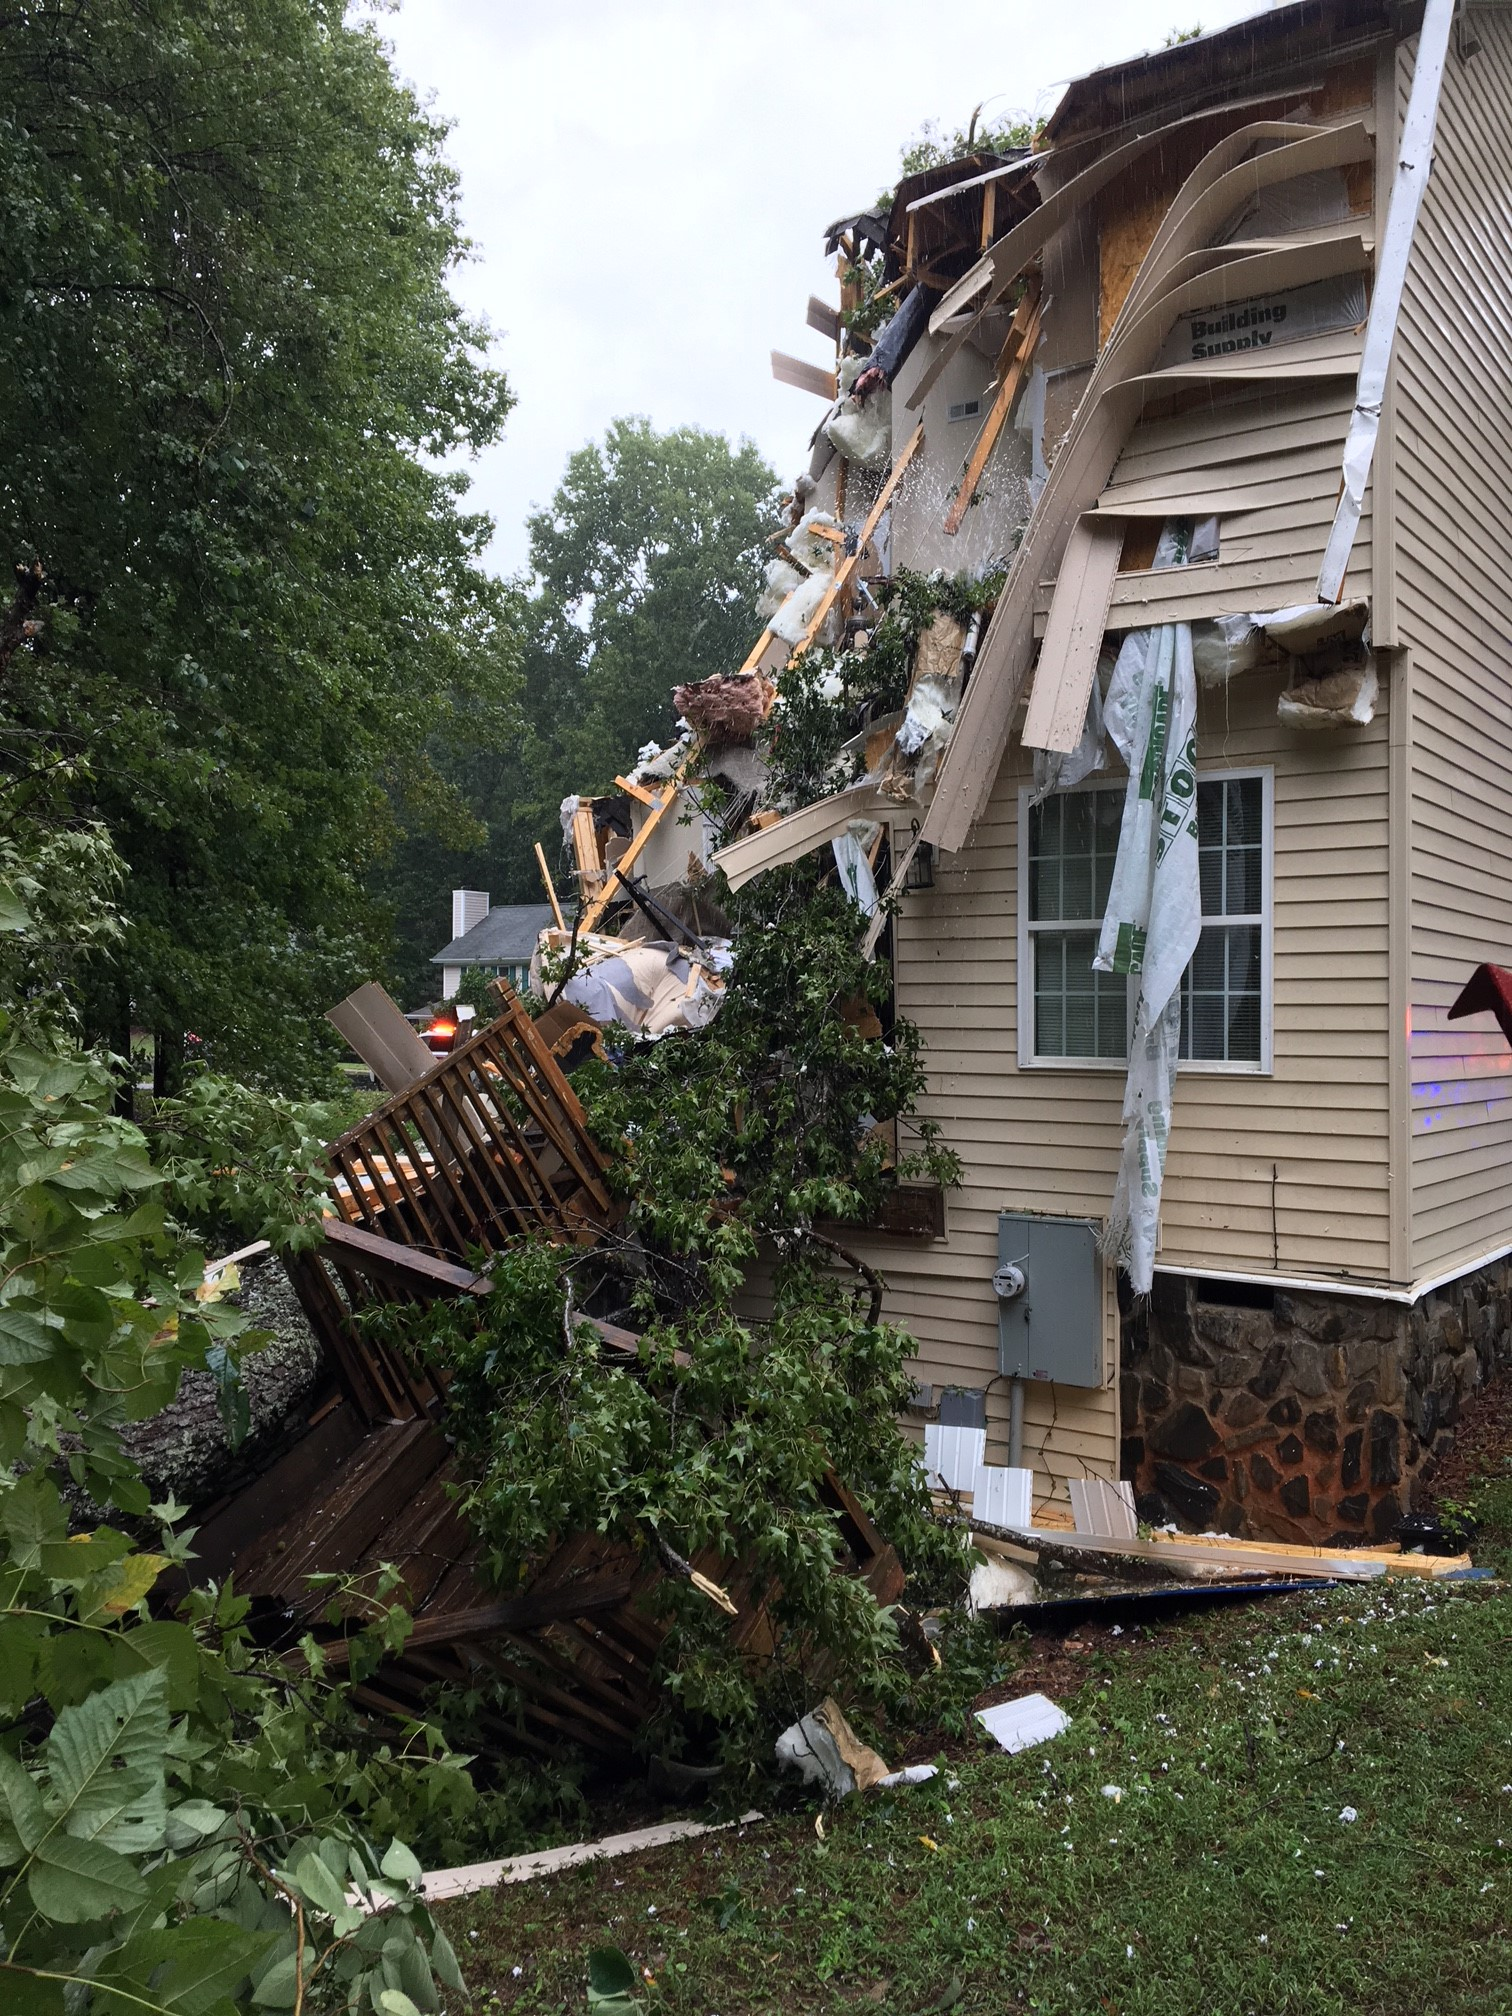 "<div class=""meta image-caption""><div class=""origin-logo origin-image wtvd""><span>WTVD</span></div><span class=""caption-text"">A home in Wake Forest is severely damaged by a fallen tree as Florence's outer bands lash the Triangle on Friday. (Town of Wake Forest)</span></div>"